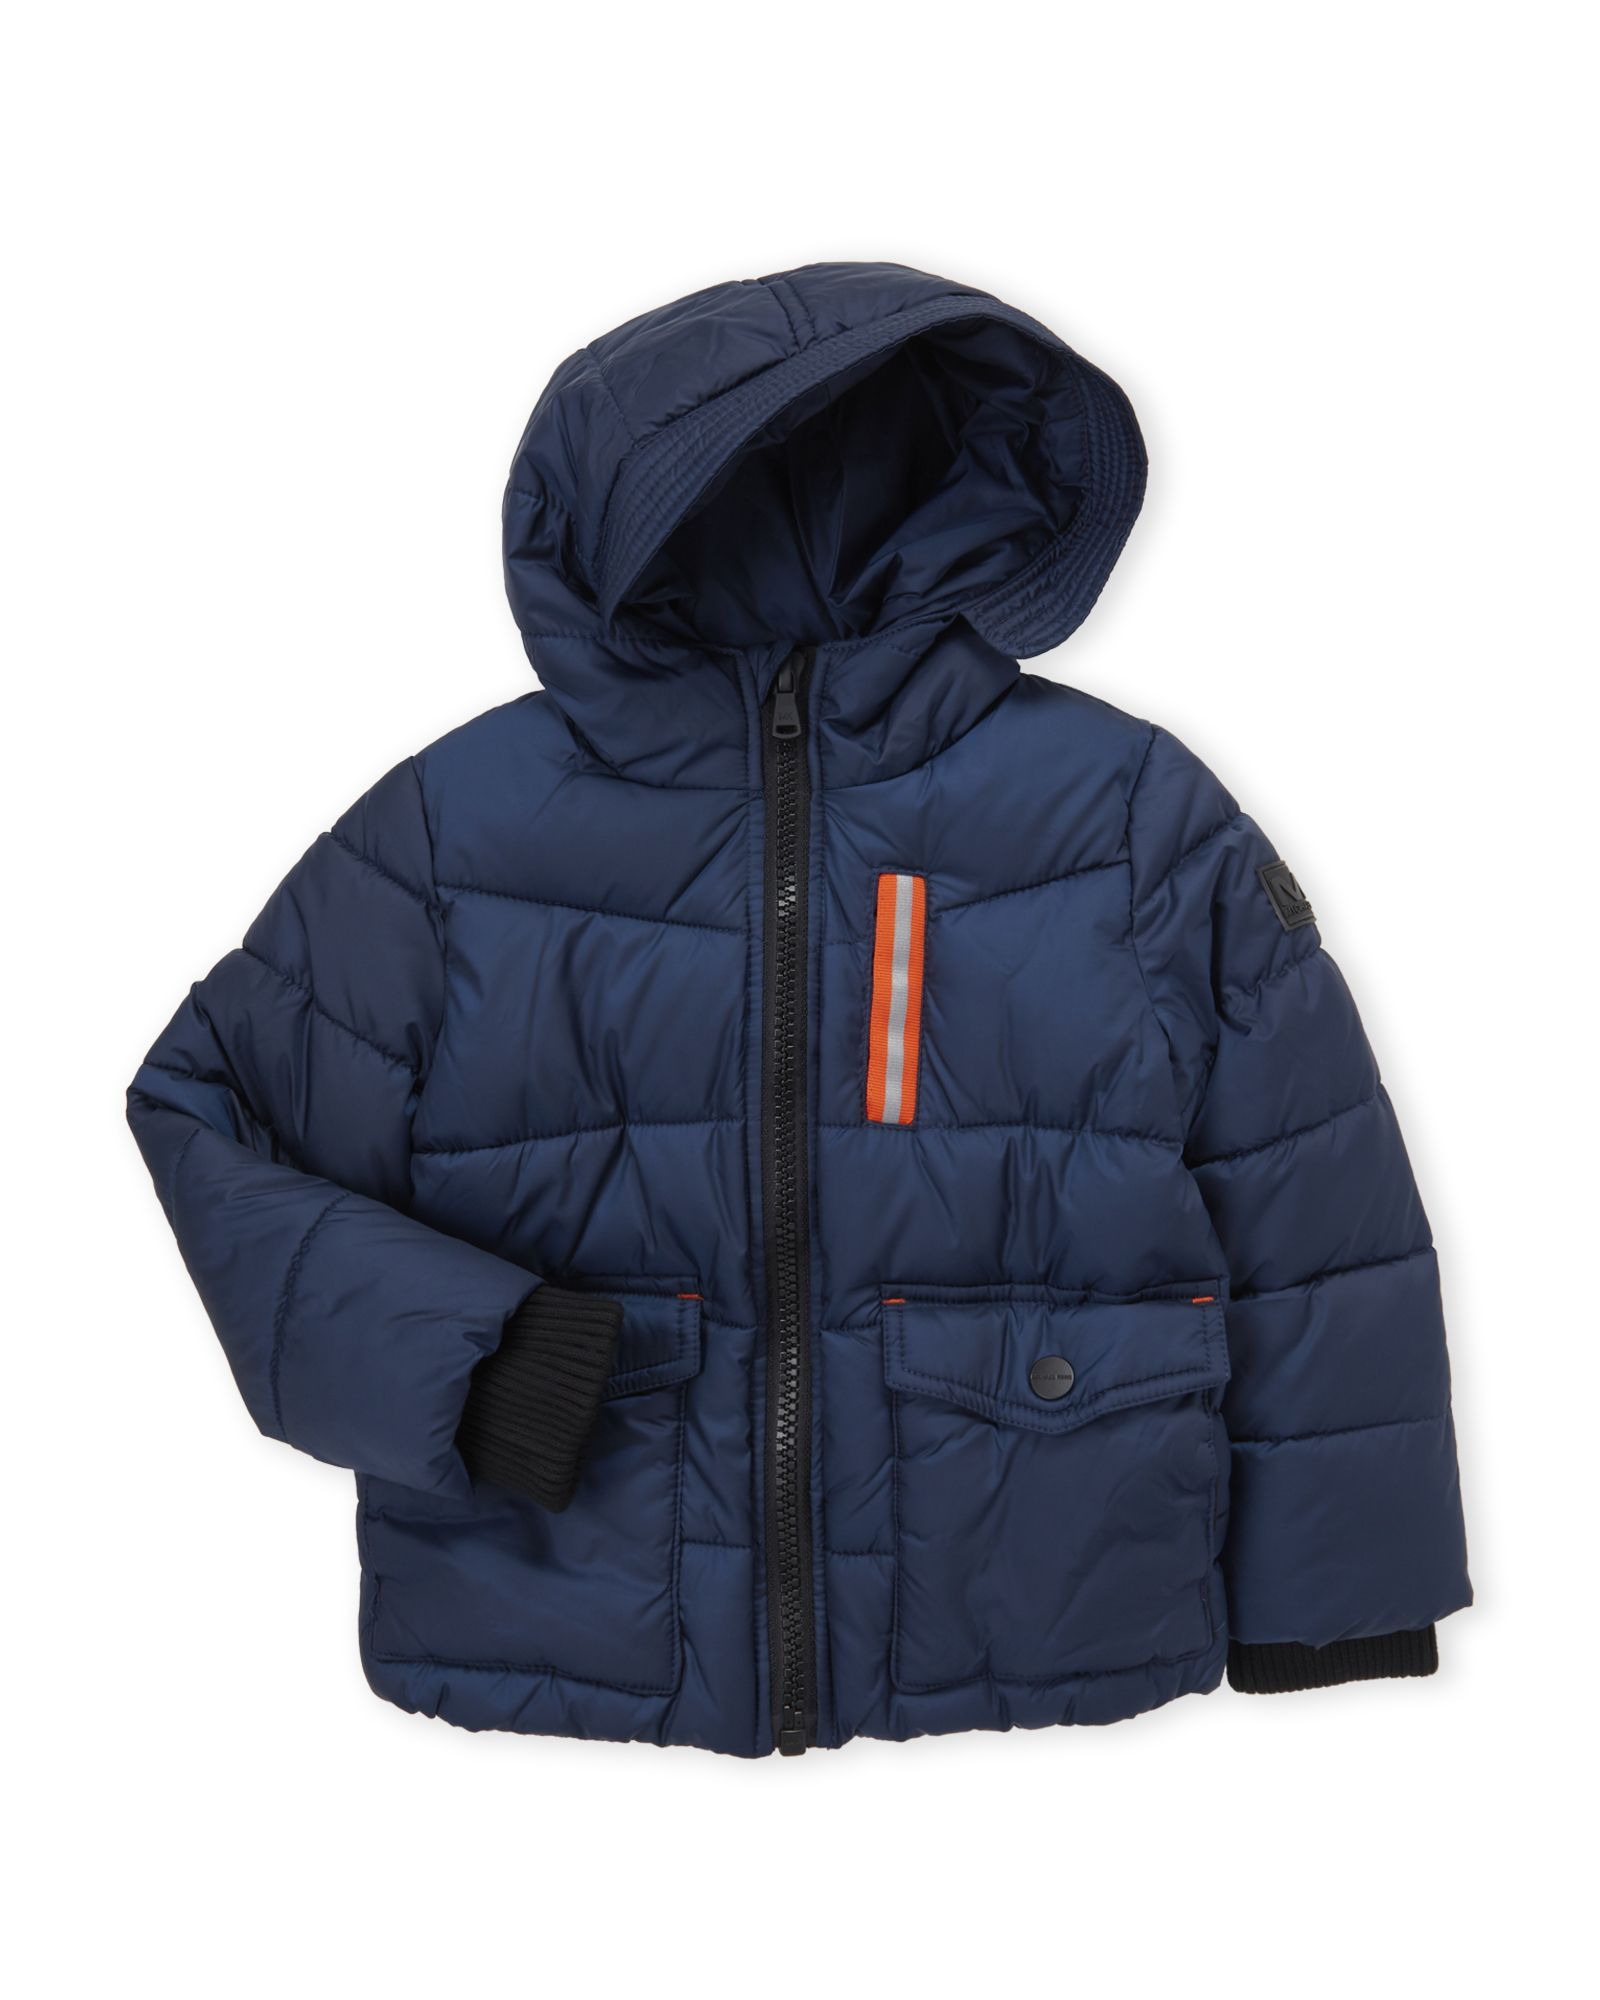 a00633d71 Michael Kors (Toddler Boys) Hooded Quilted Puffer Jacket